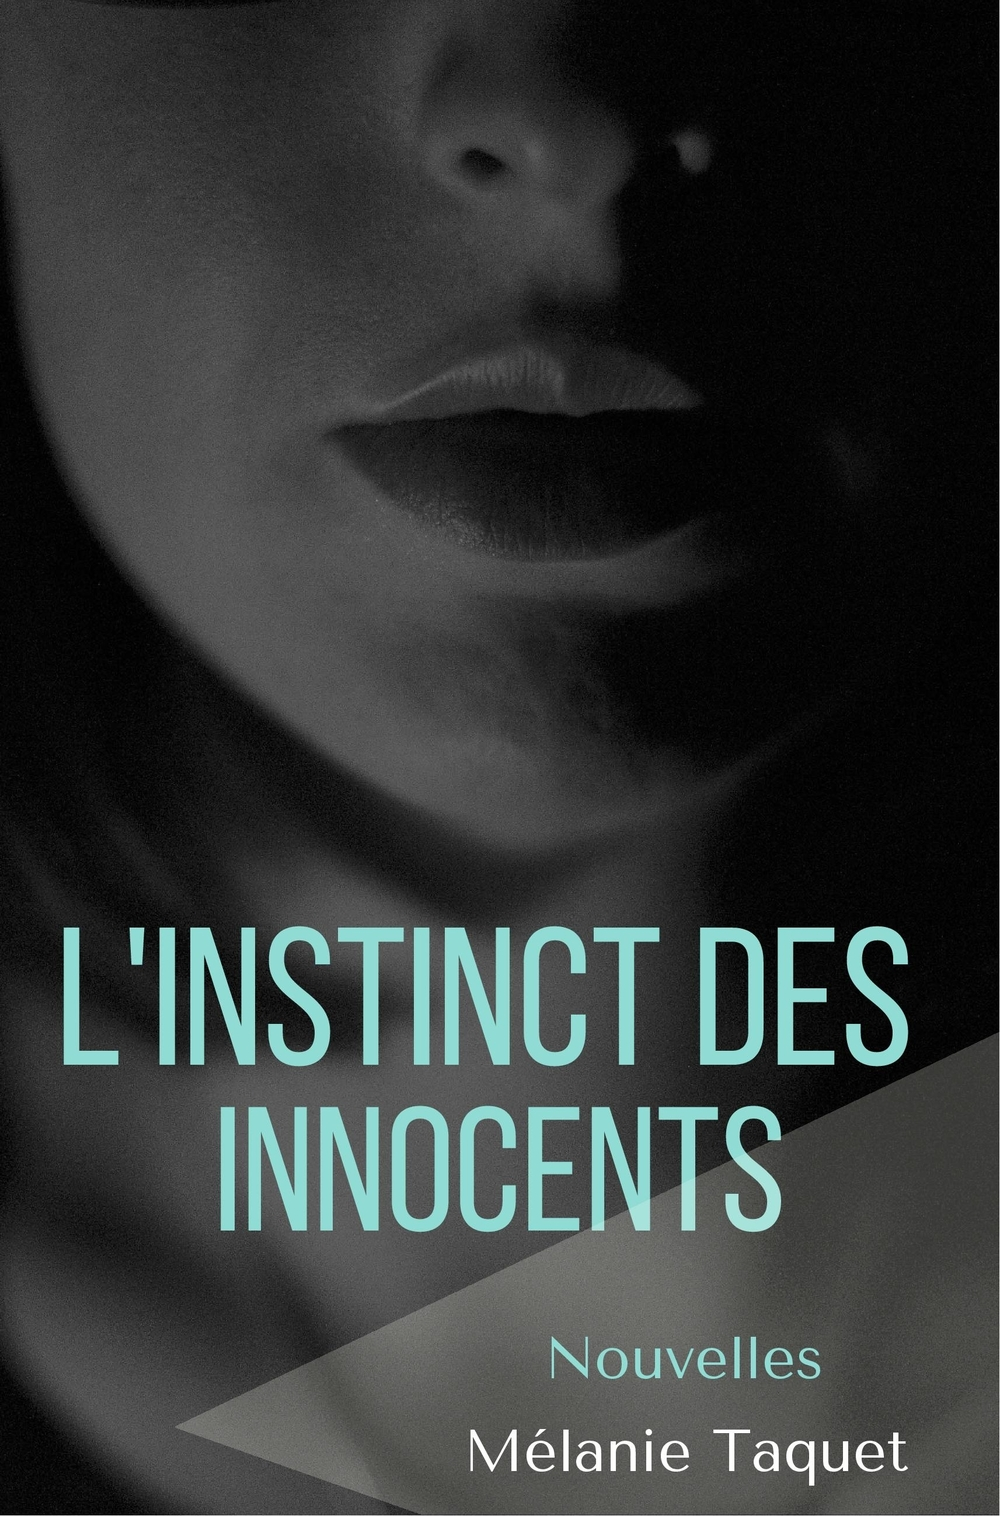 L'instinct des innocents